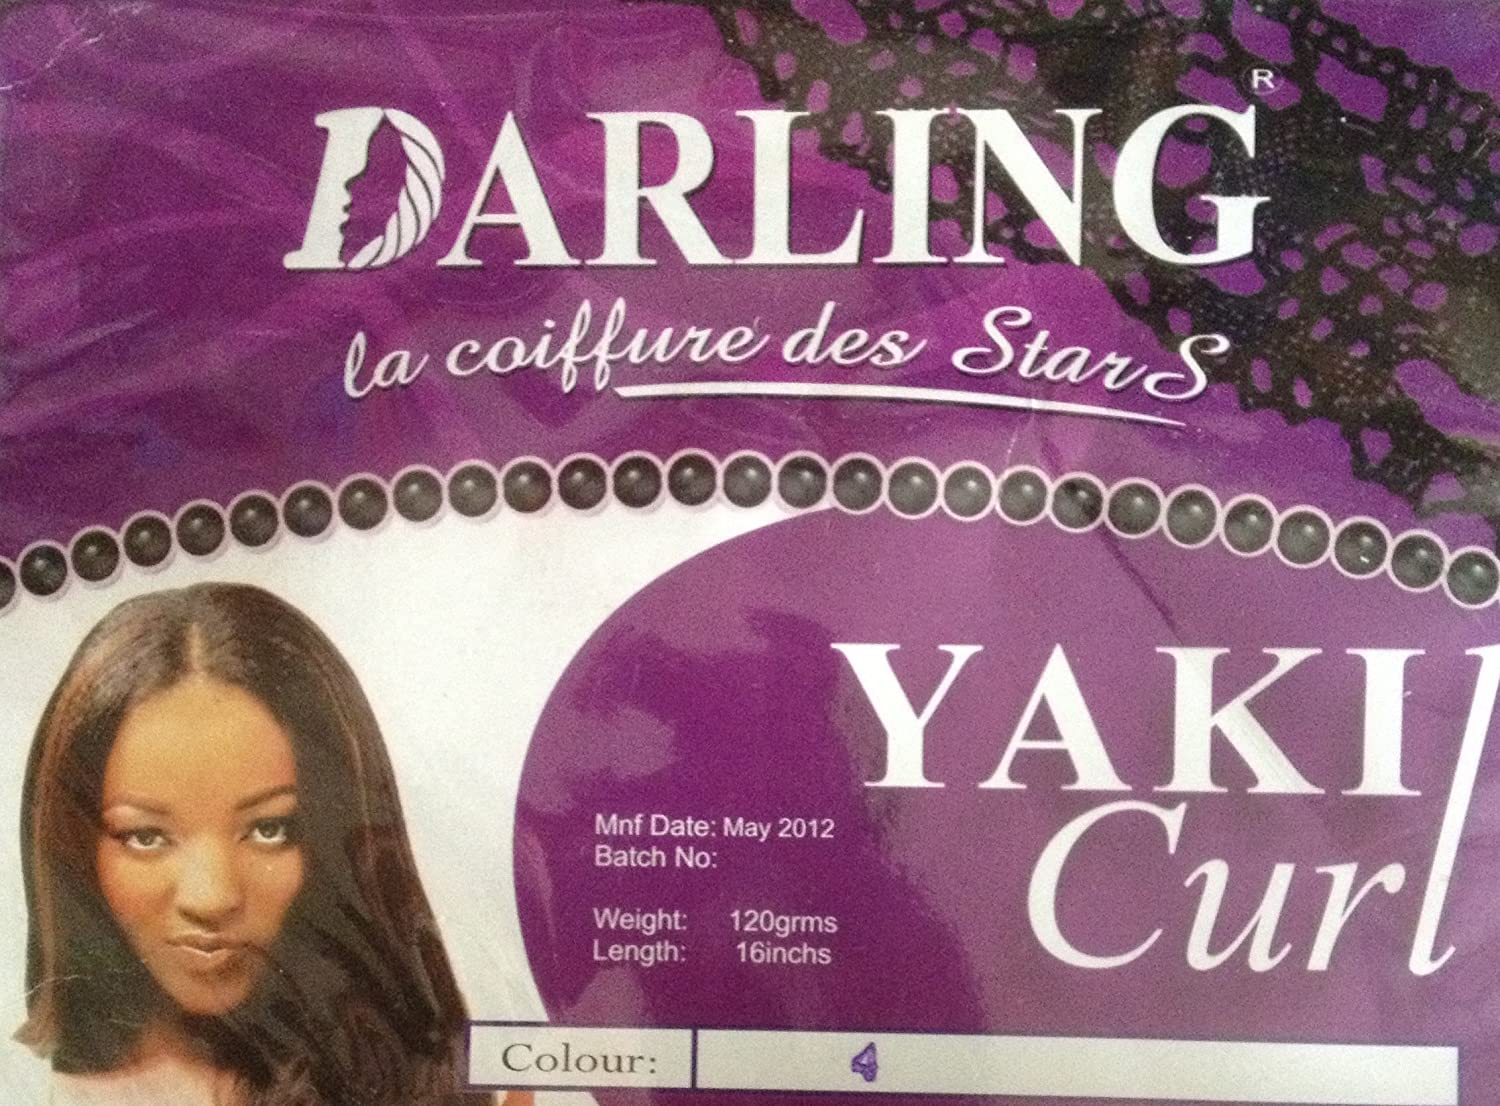 Extensions des stars